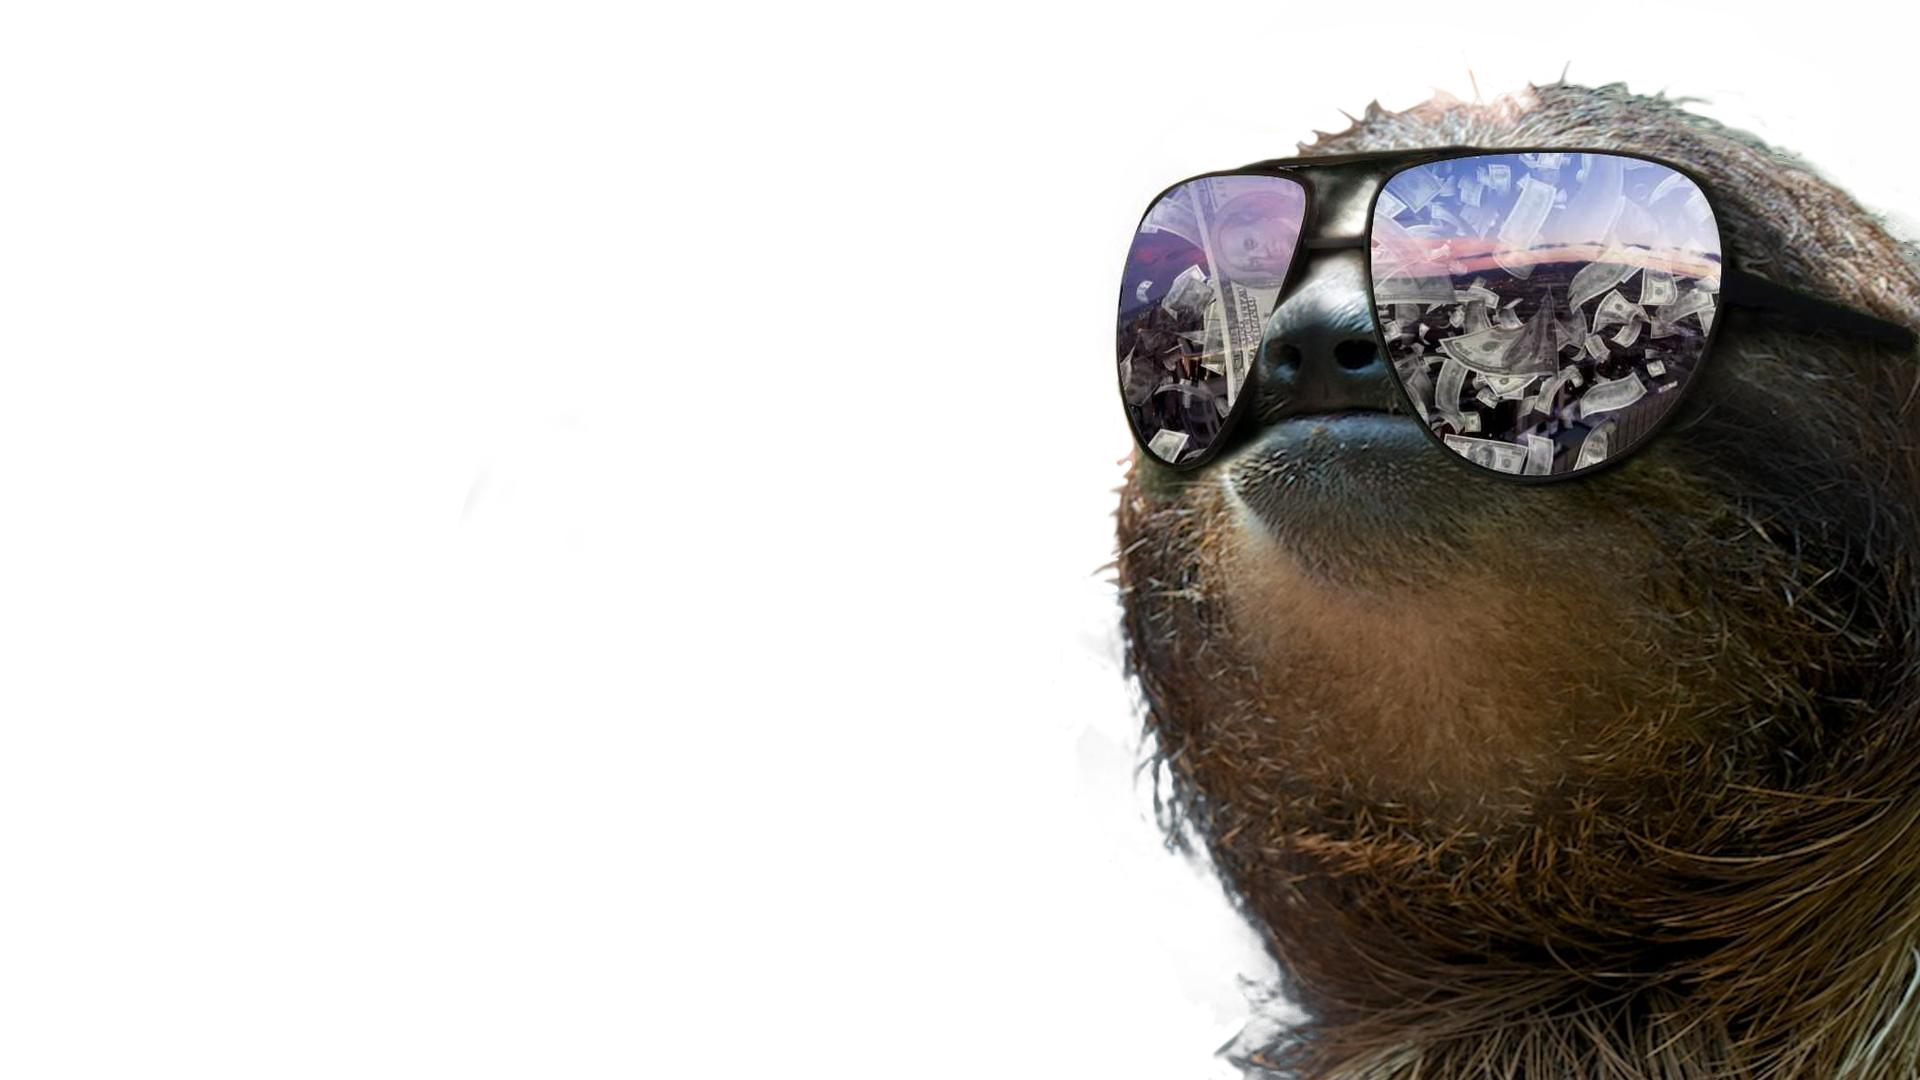 Sloth Wallpapers Design Ideas ~ A Very Slothy Wallpapers Xpost From